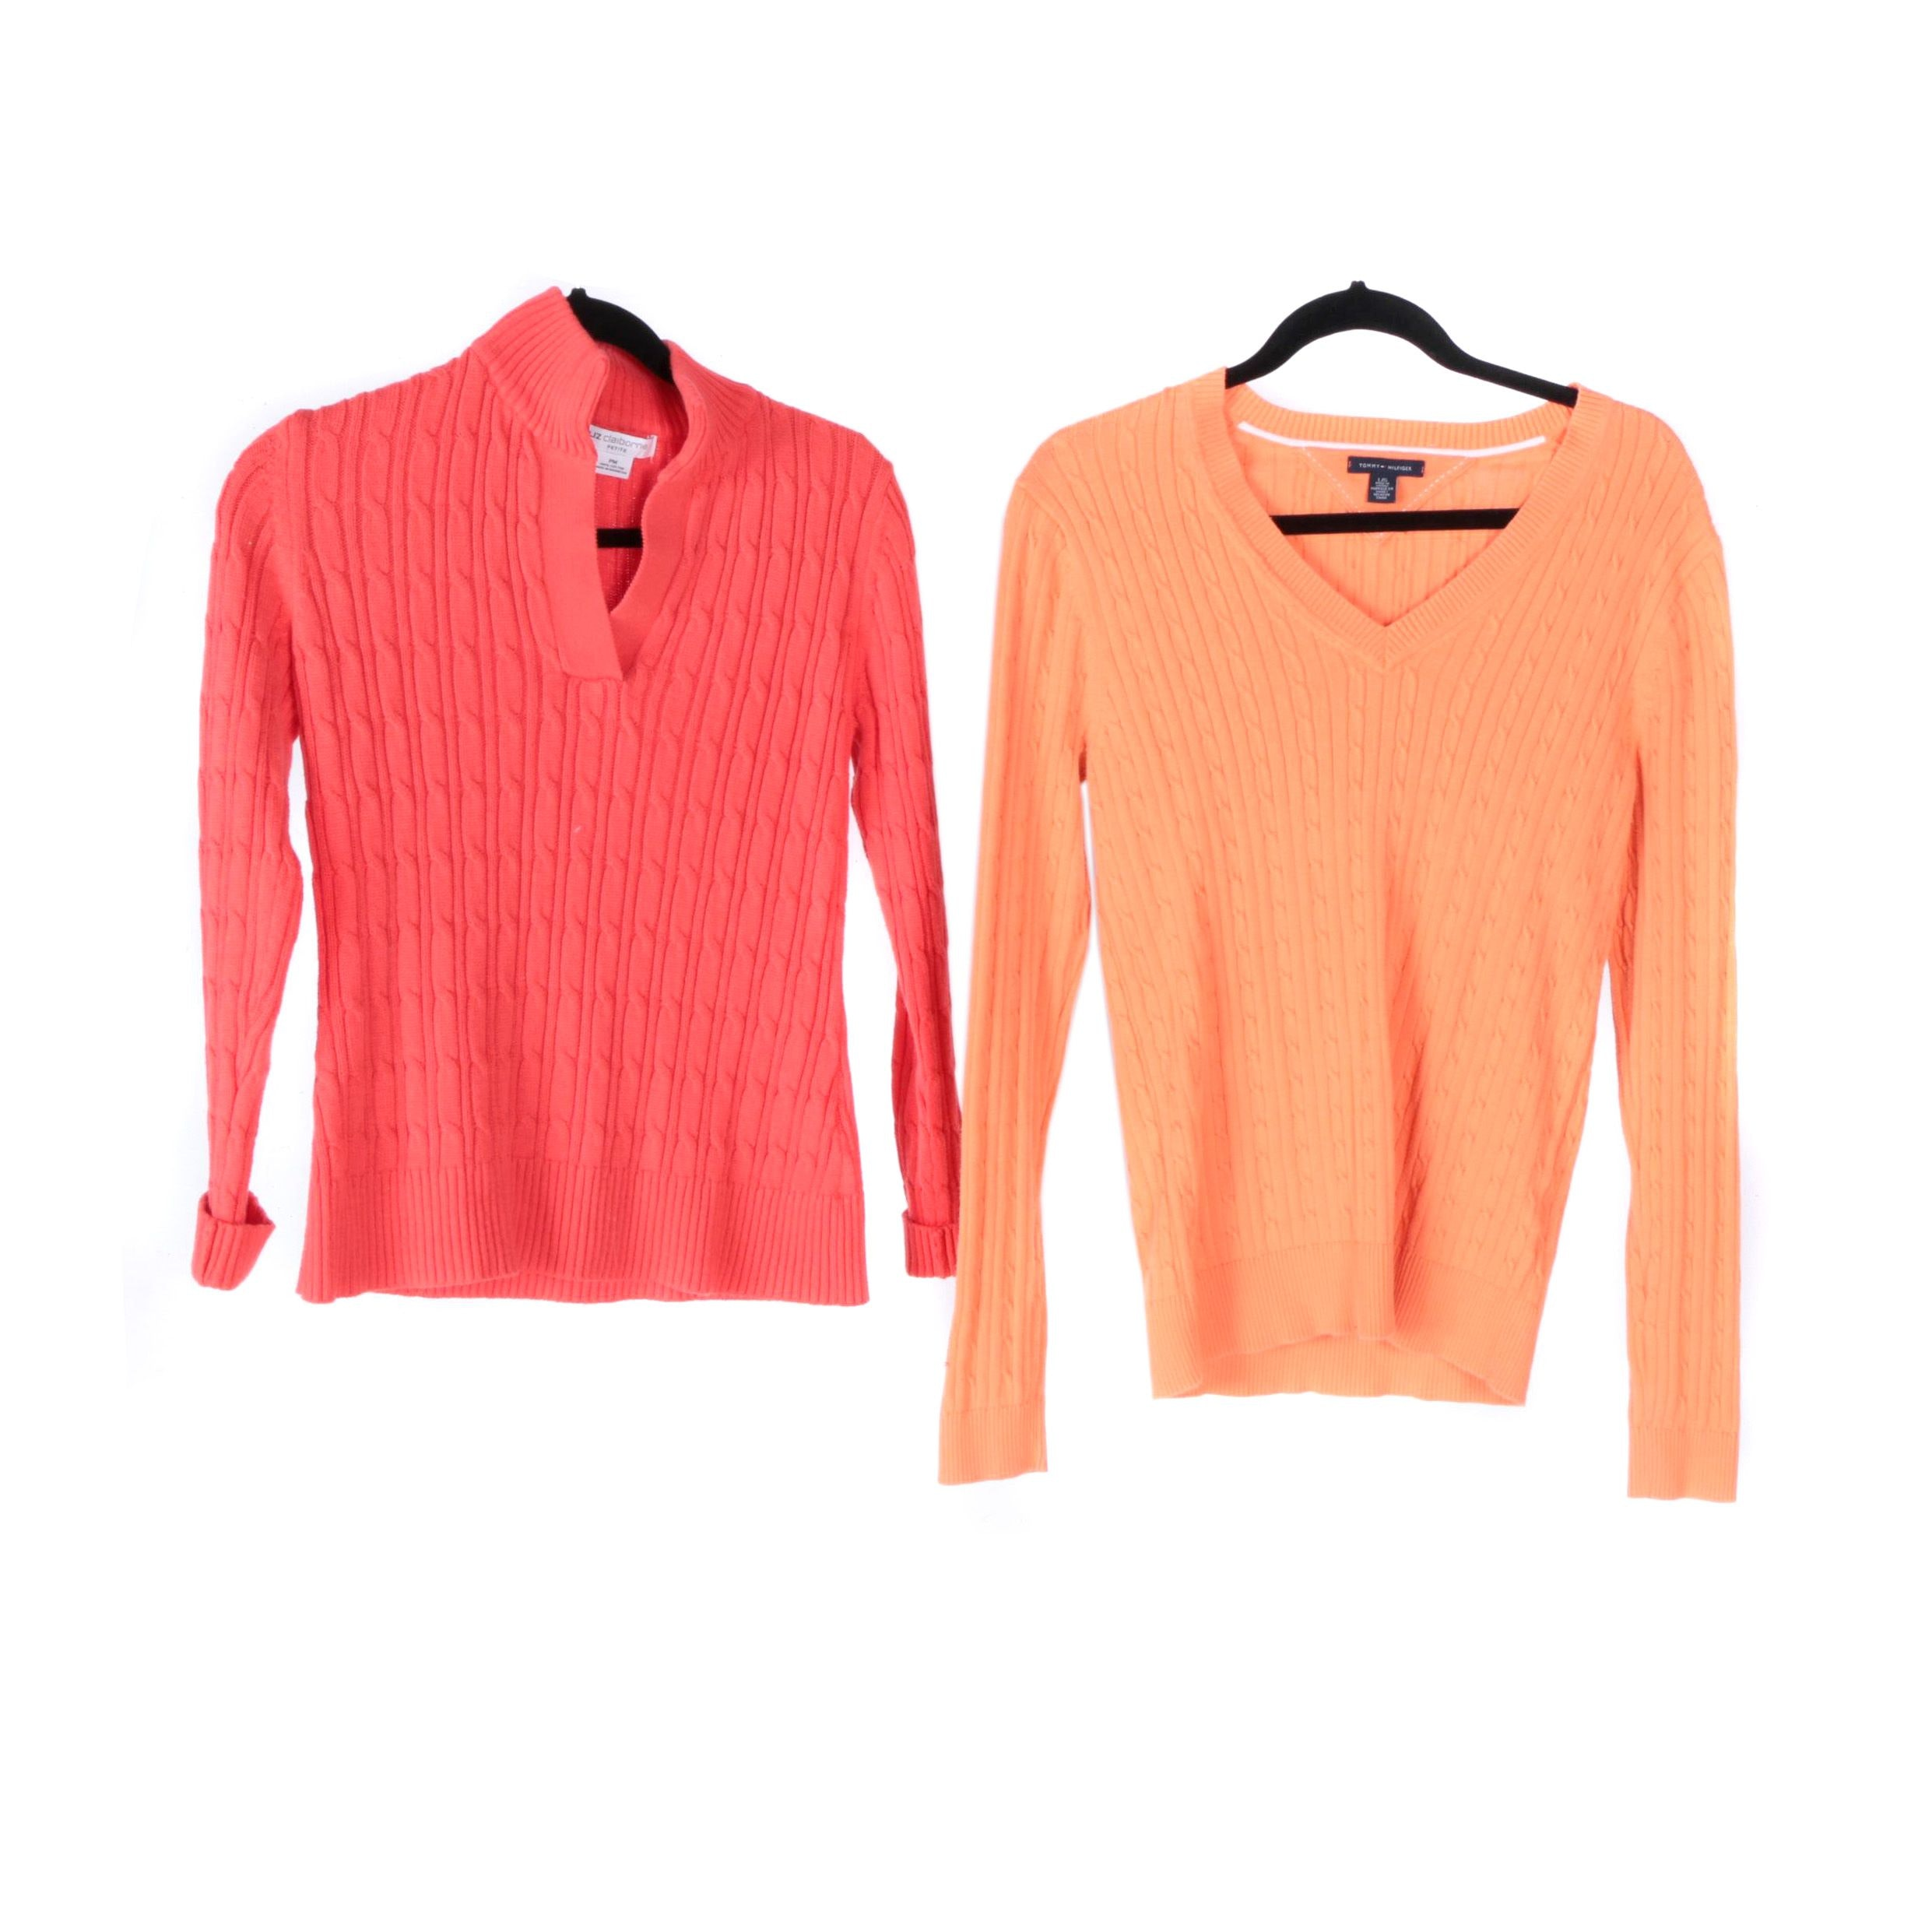 Women's Liz Claiborne and Tommy Hilfiger Sweaters